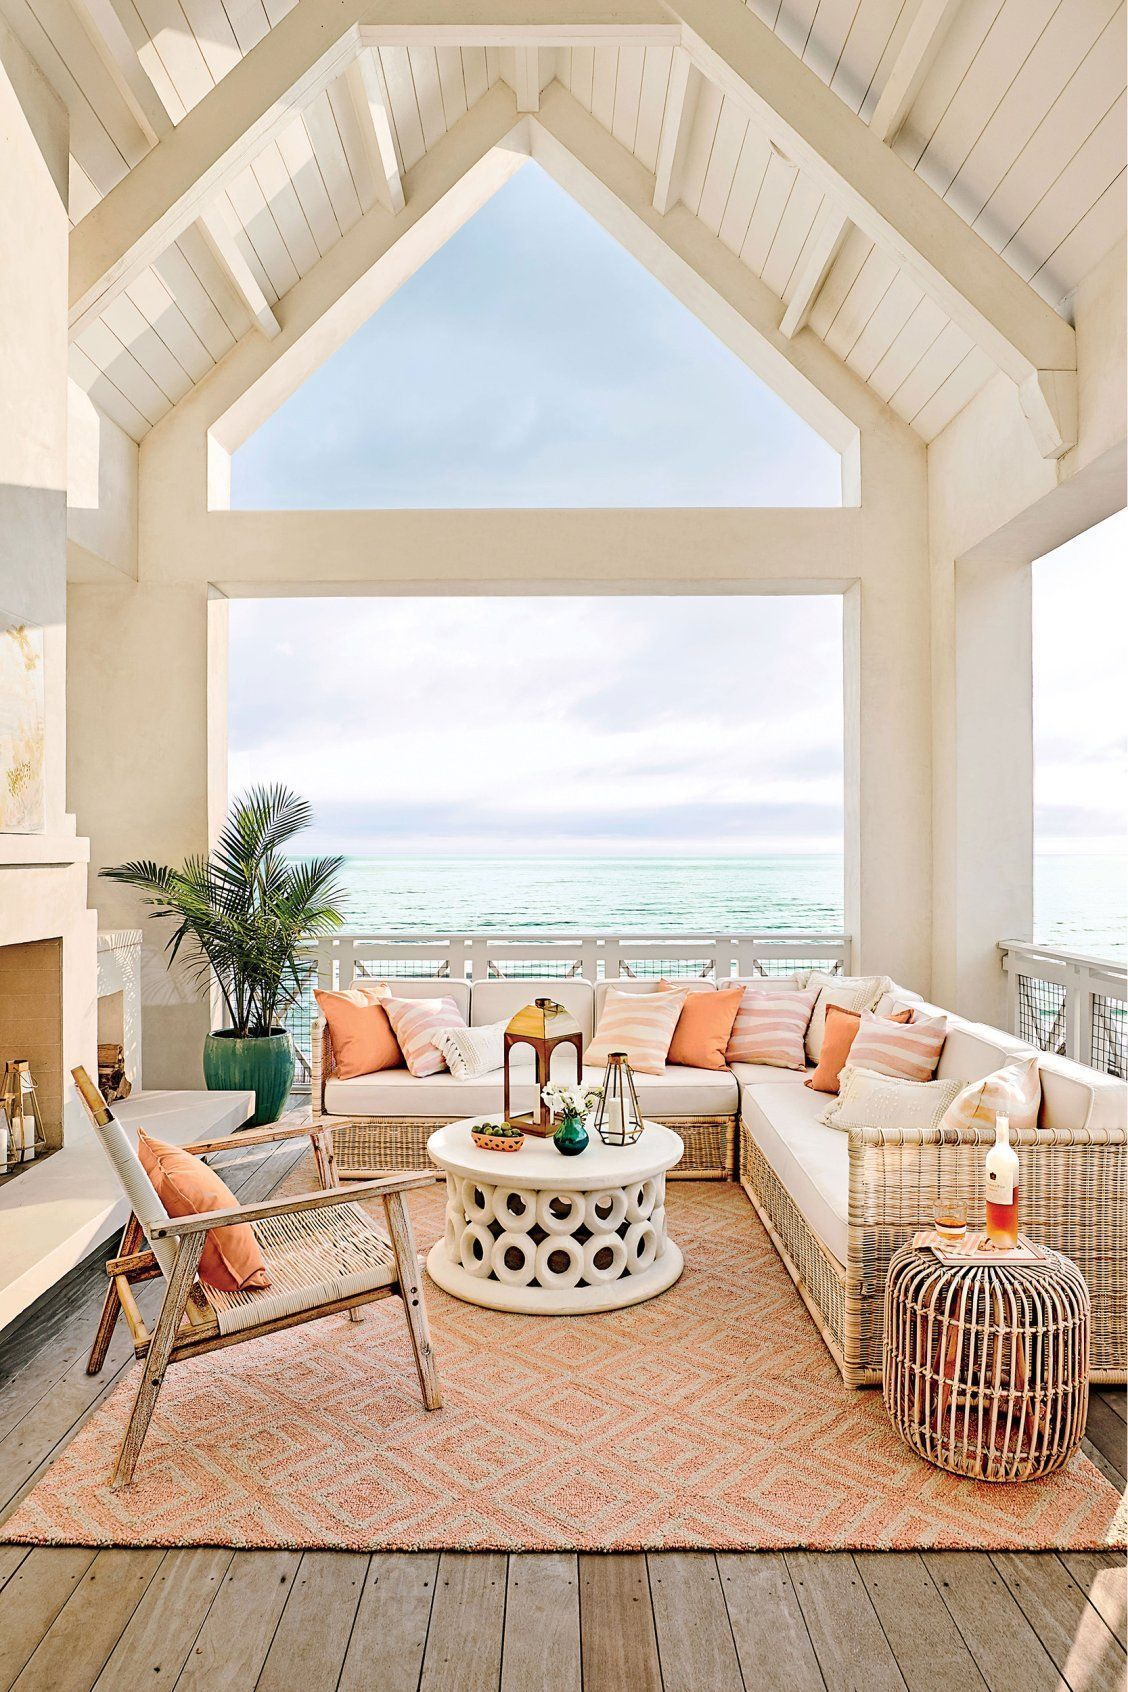 Trend Alert! This New Neutral Will Be the Hottest Color in Outdoor Design Accord... -  Trend Alert! This New Neutral Will Be the Hottest Color in Outdoor Design According to Experts #Decoration #homedecor #homedesign #homeideas